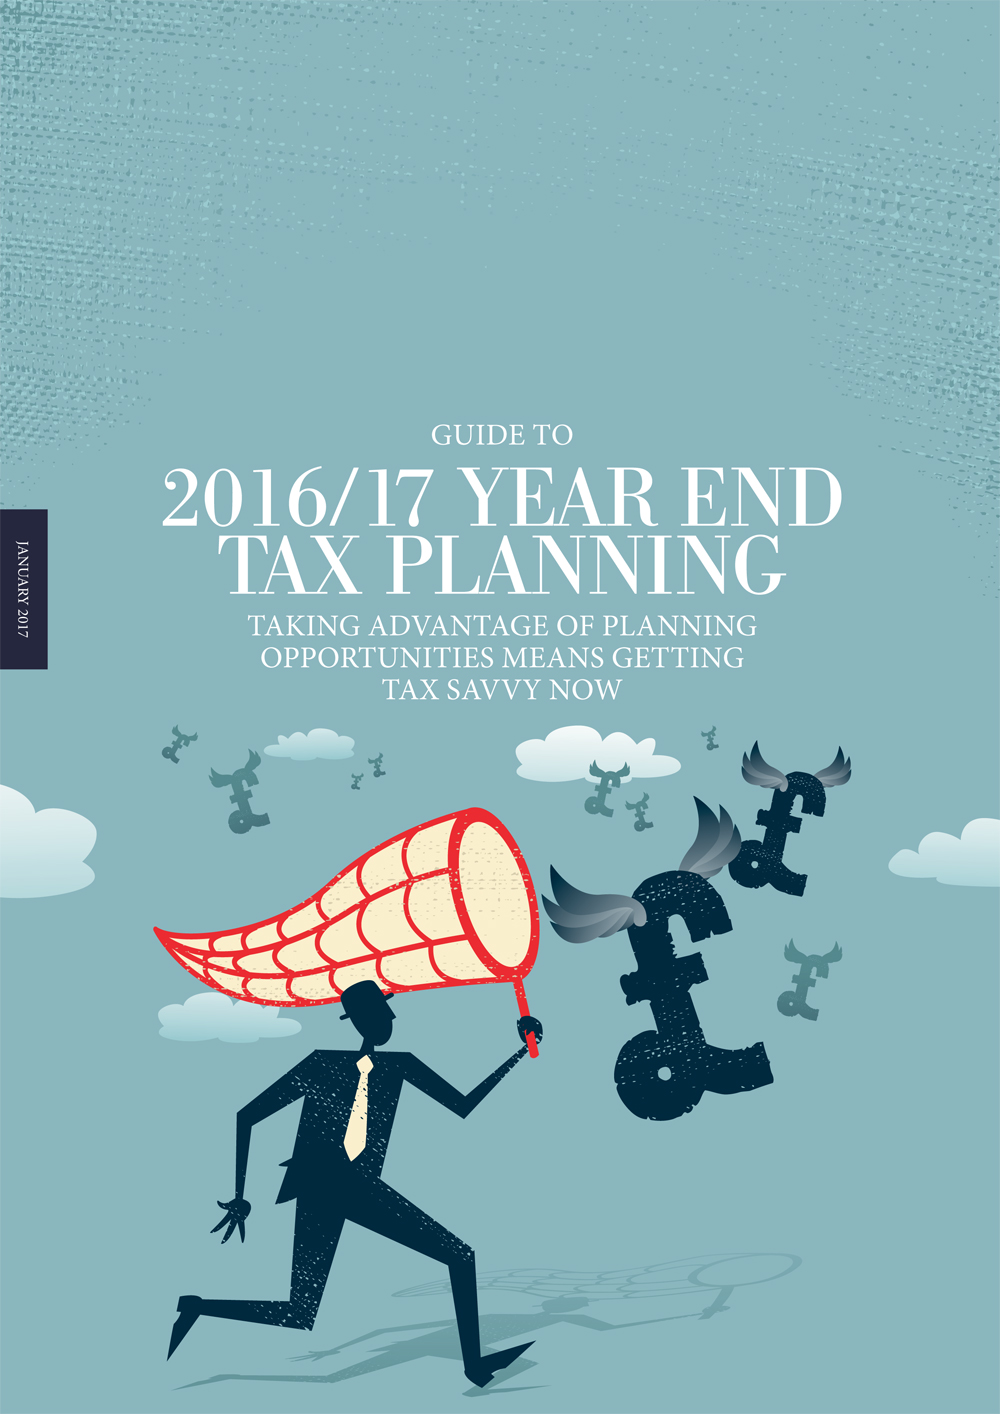 Guide To 2016 / 17 Tax Planning